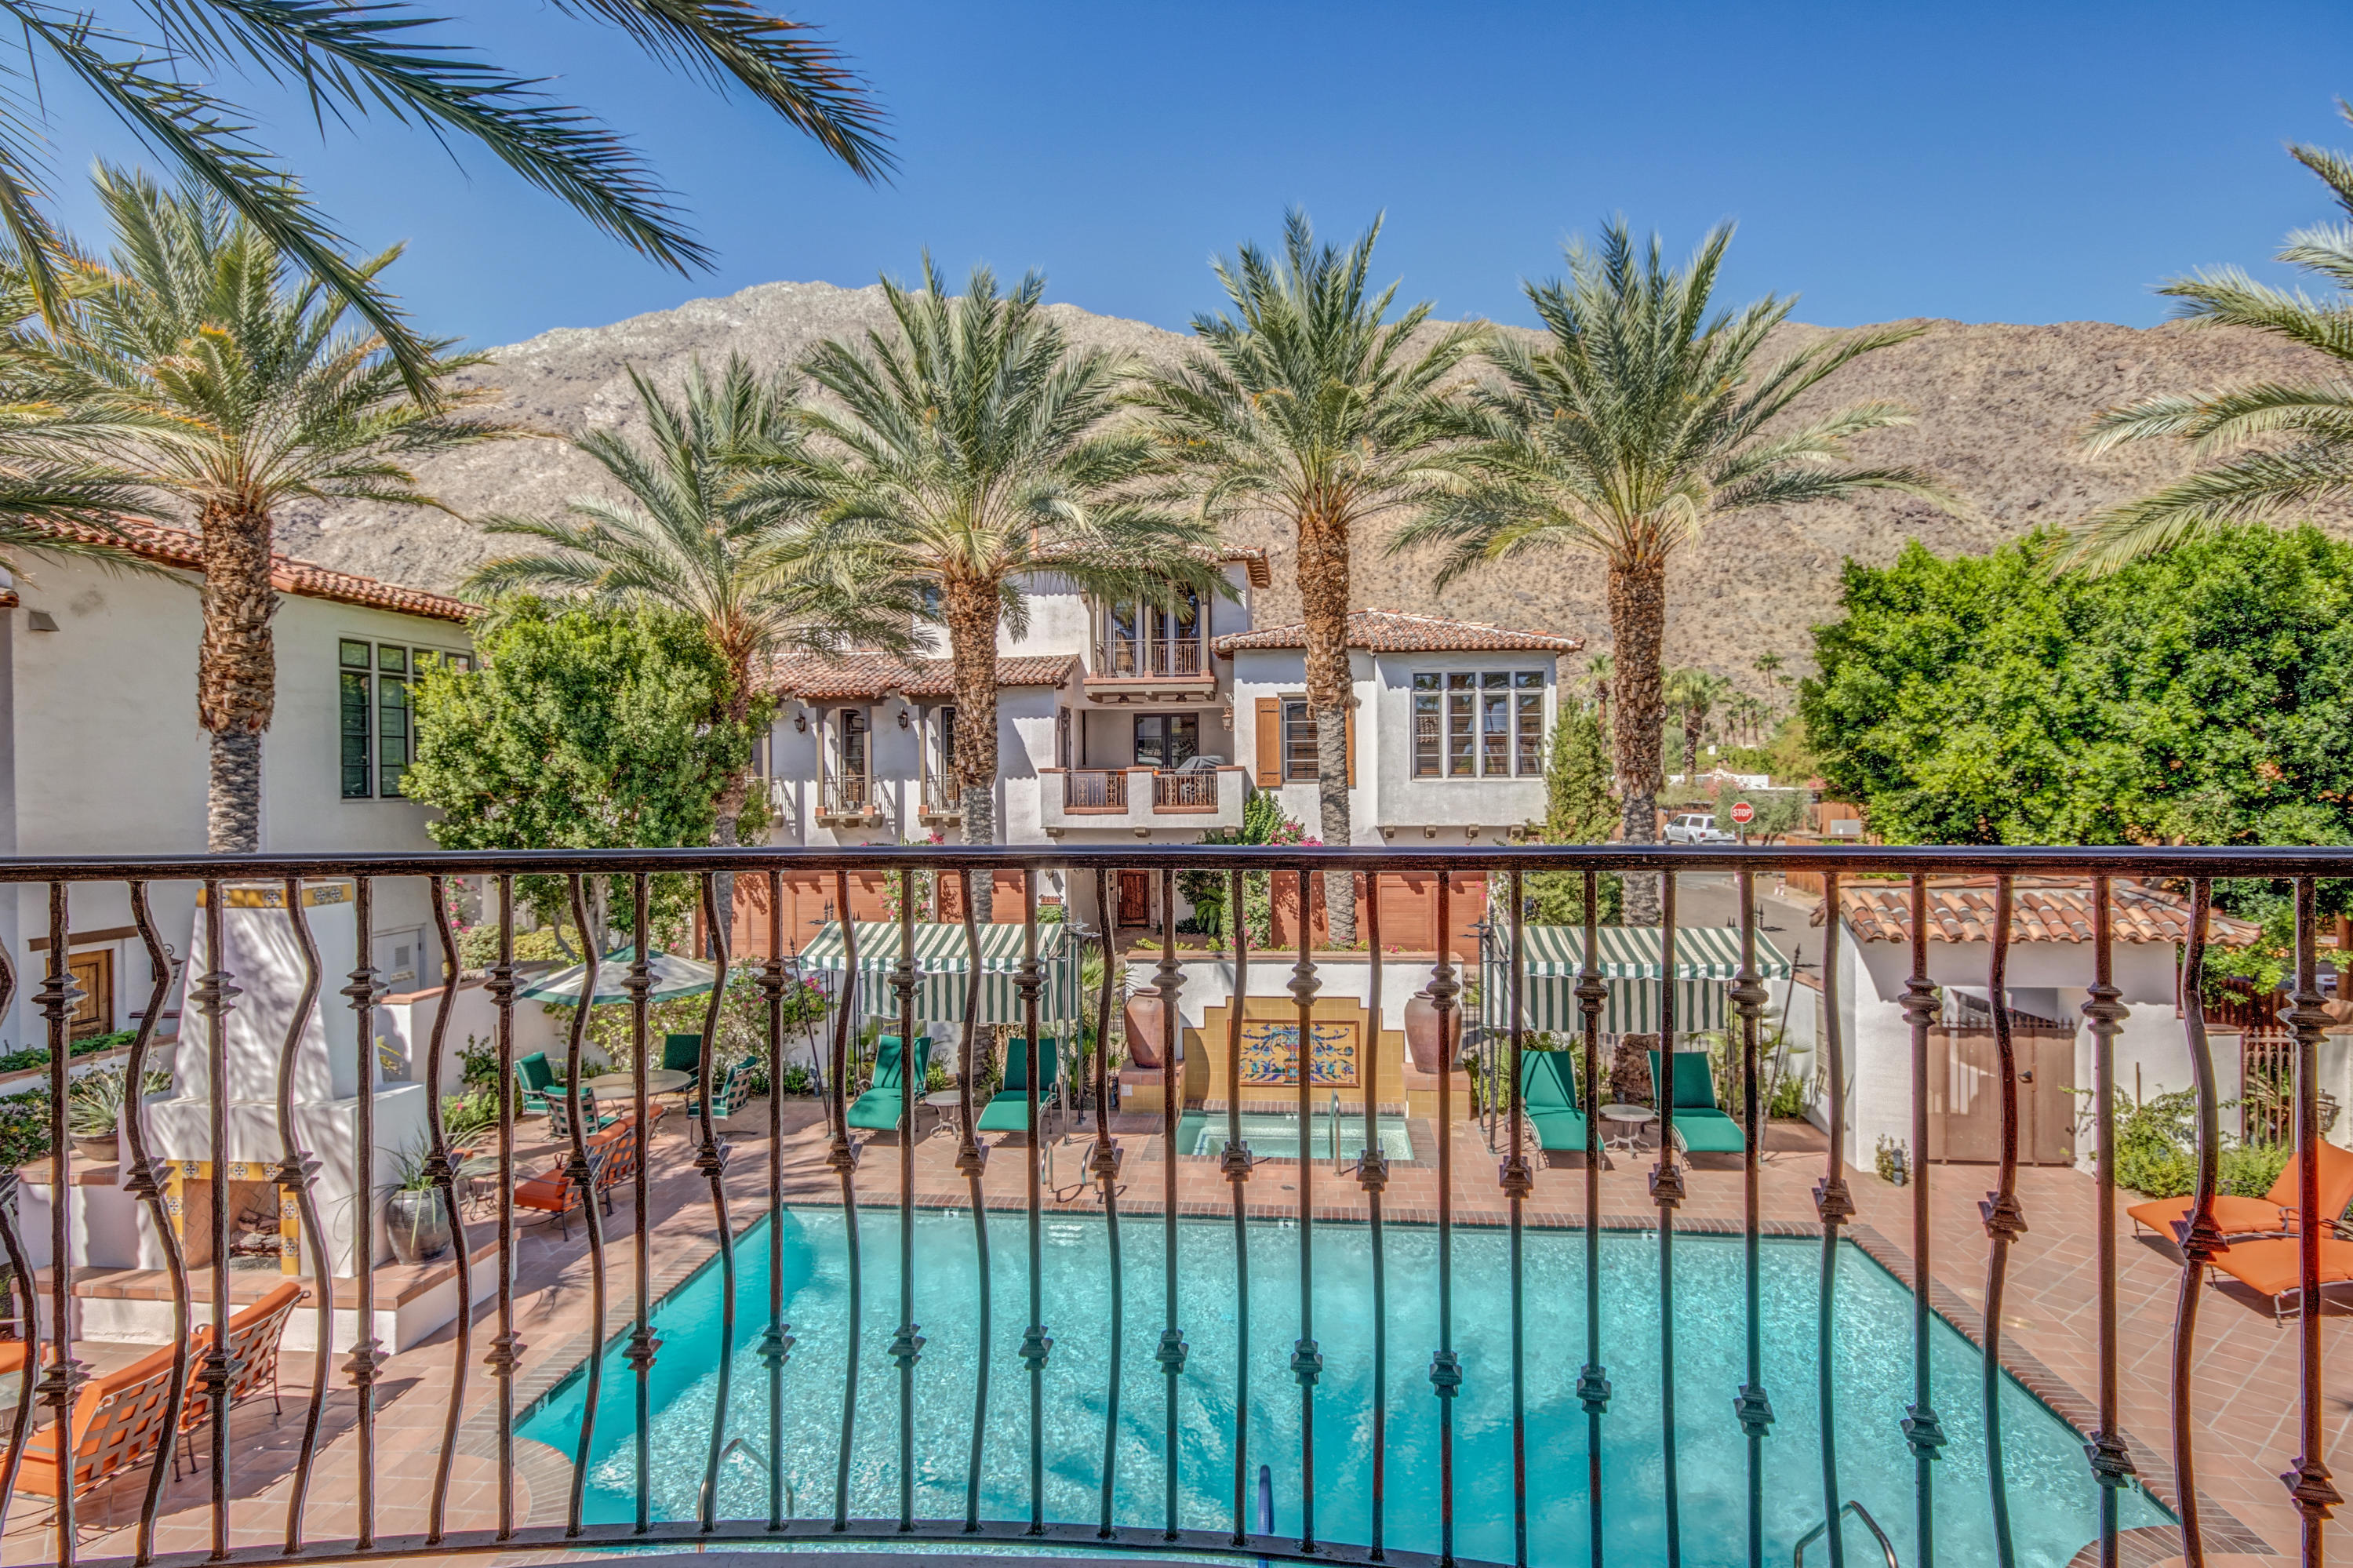 The desert's leisurely lifestyle meets Historic Tennis Club. Beautifully appointed 2 bedroom plus den and media room. Built-ins, wall-to-ceiling stonework, and overall design choices including vaulted ceilings begin to tell the story. BBQ space with its custom wrought iron design is a jaw-dropper. The ''Batchelder tile'' inspired fountain is exceptional. Living room is framed by a series of 10-foot French doors opening to wrap around patios. Kitchen upgrades include custom granite countertops, high end appliances, and designer cabinetry. This home's designer took great liberty in creating a space that is ANYTHING but cookie cutter. Breakfast area opens to patio in grand fashion. Formal dining is yet another option. Home office is currently used as a guest room. Upstairs TV room / den includes wet bar with stone backsplash. Master suite enjoys a patio looking out over the town. Double sinks, stunning finishes, and oversized master closet is located within the master bath. Laundry is located upstairs. St Baristo's pool area is world class. Think Italian Riviera meets Slim Aarons' photo shoot! Proximity to walkable historic neighborhoods hugging the San Jacinto Mountains in Old Palm Springs is another plus. Restaurants and shopping are a couple blocks away. So much to love. You'll find it here!